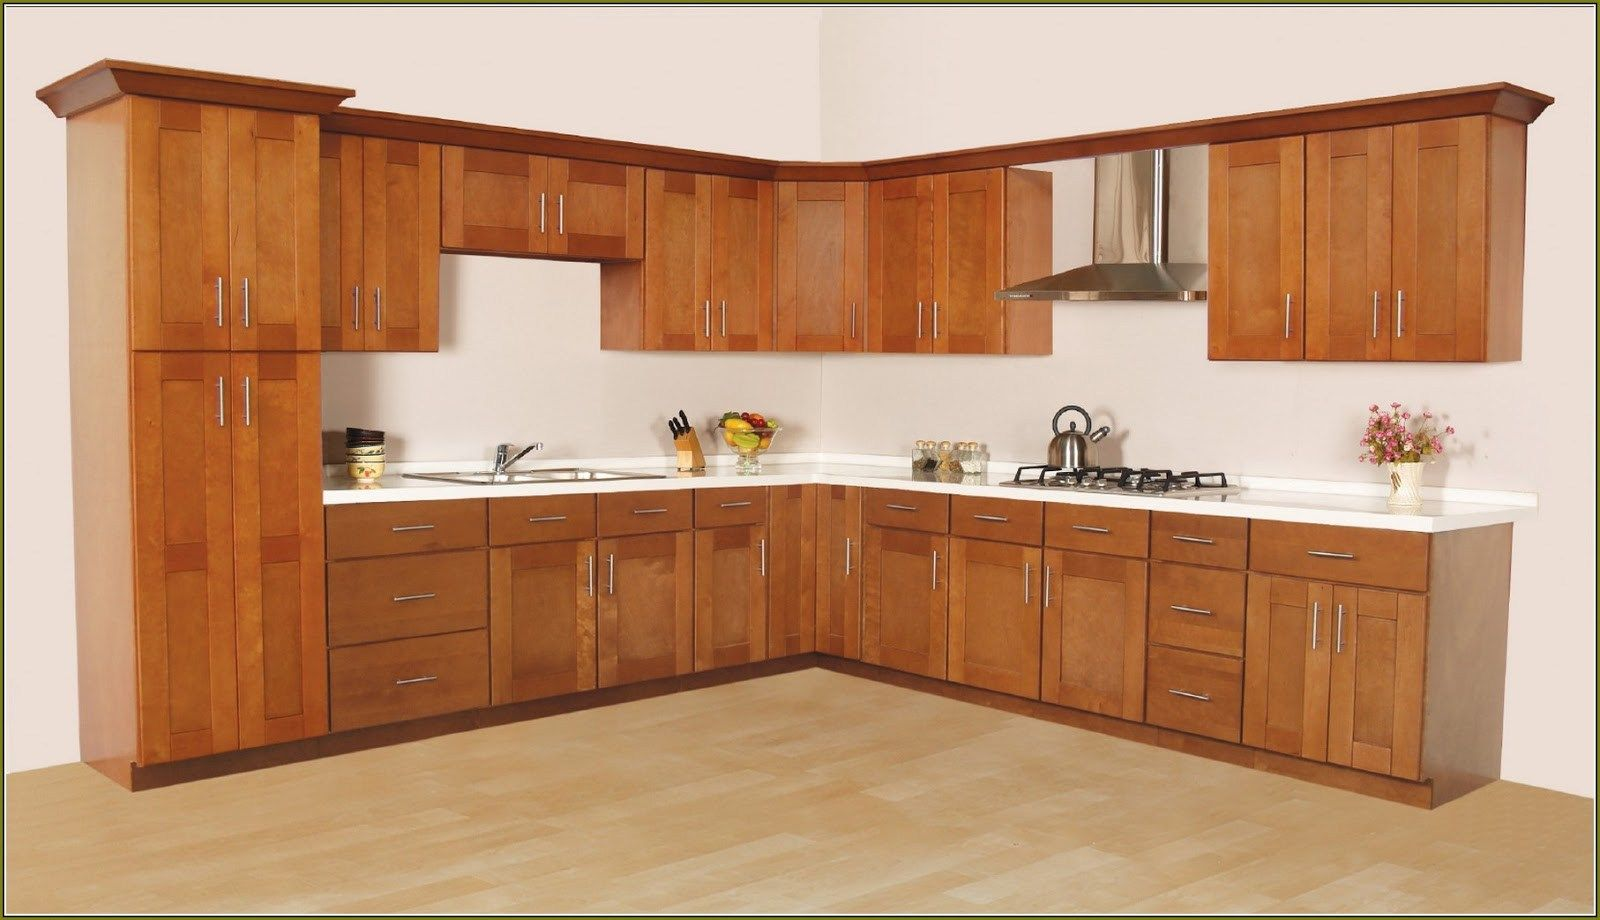 Why Unfinished Shaker Kitchen Cabinets Are Great For